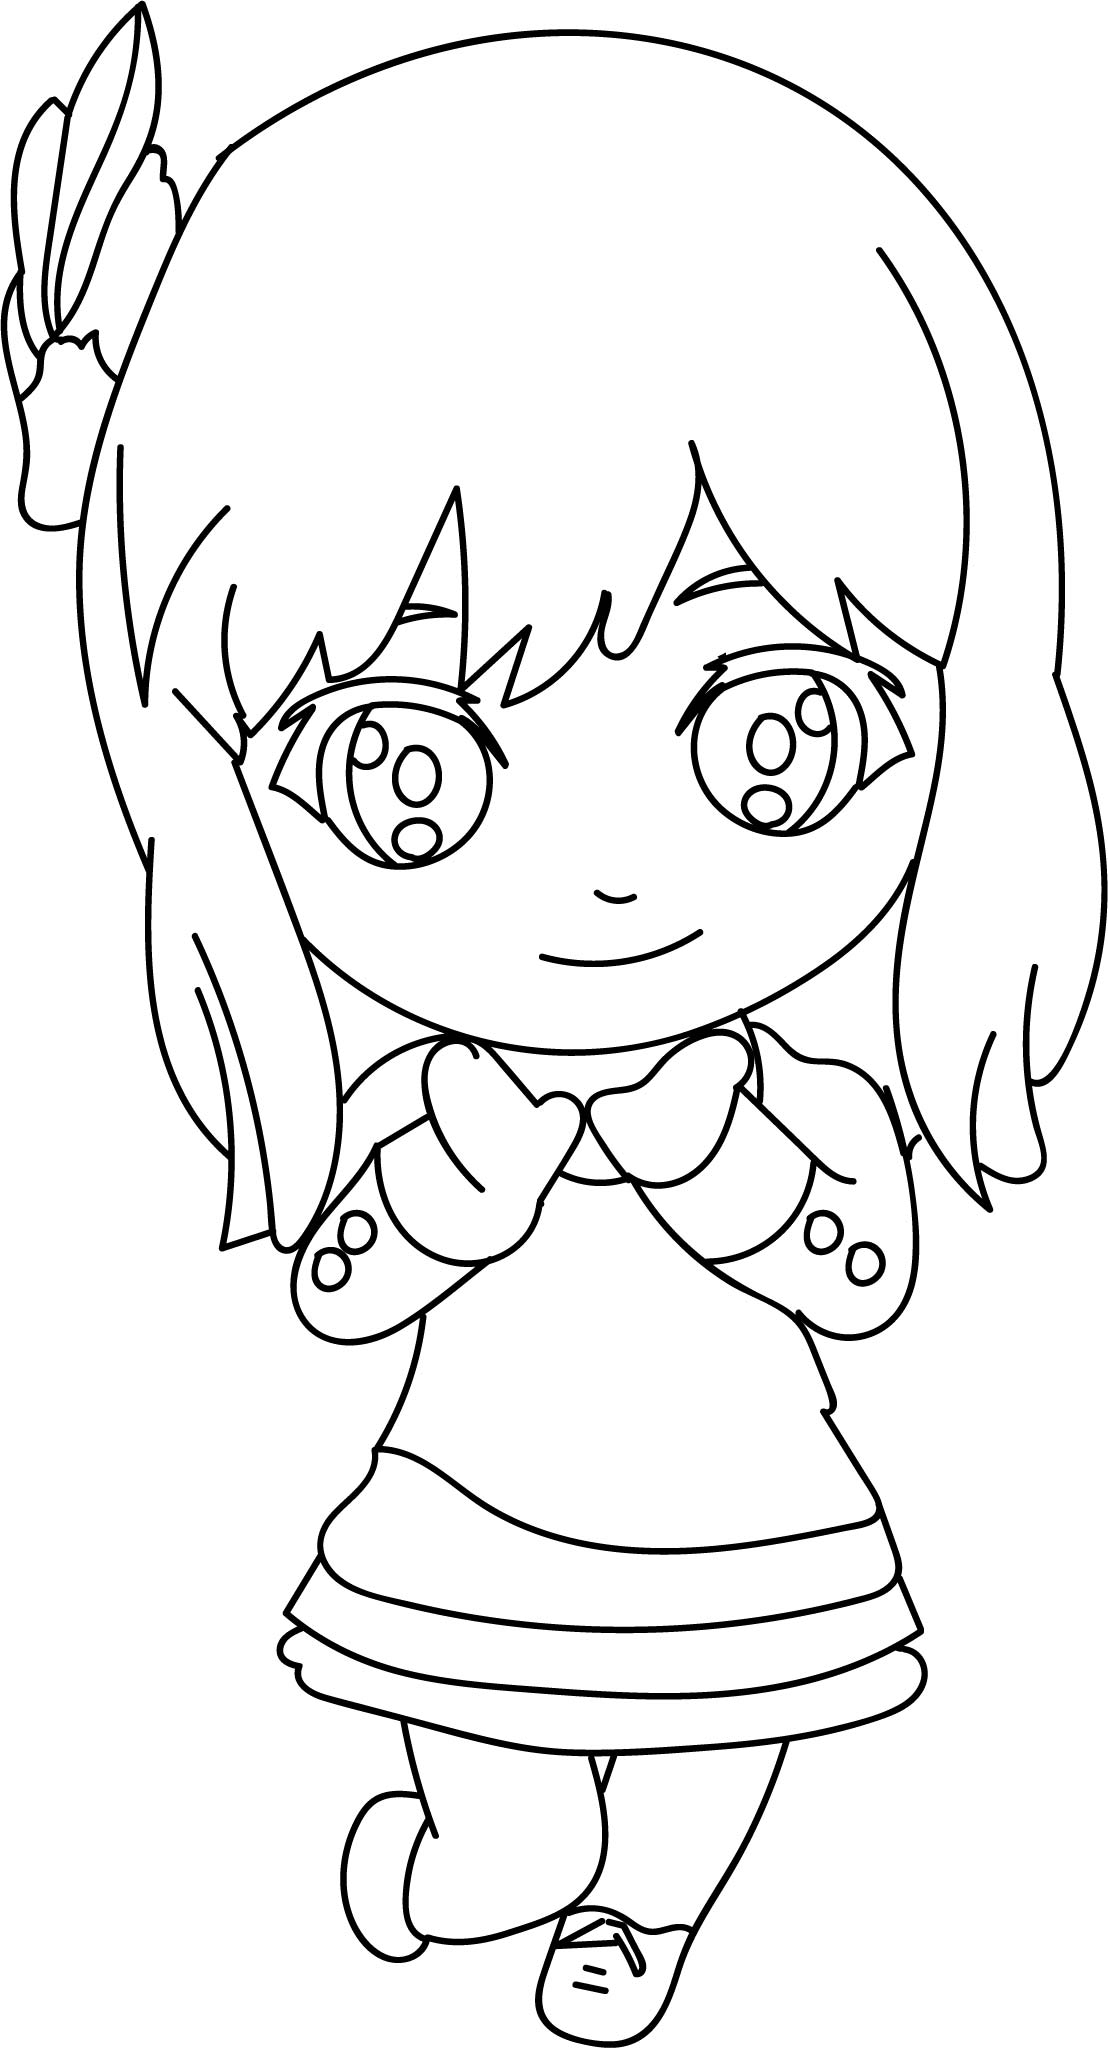 cute chibi girl coloring pages pin van elisabeth quisenberry op coloring beauties cute coloring chibi girl pages